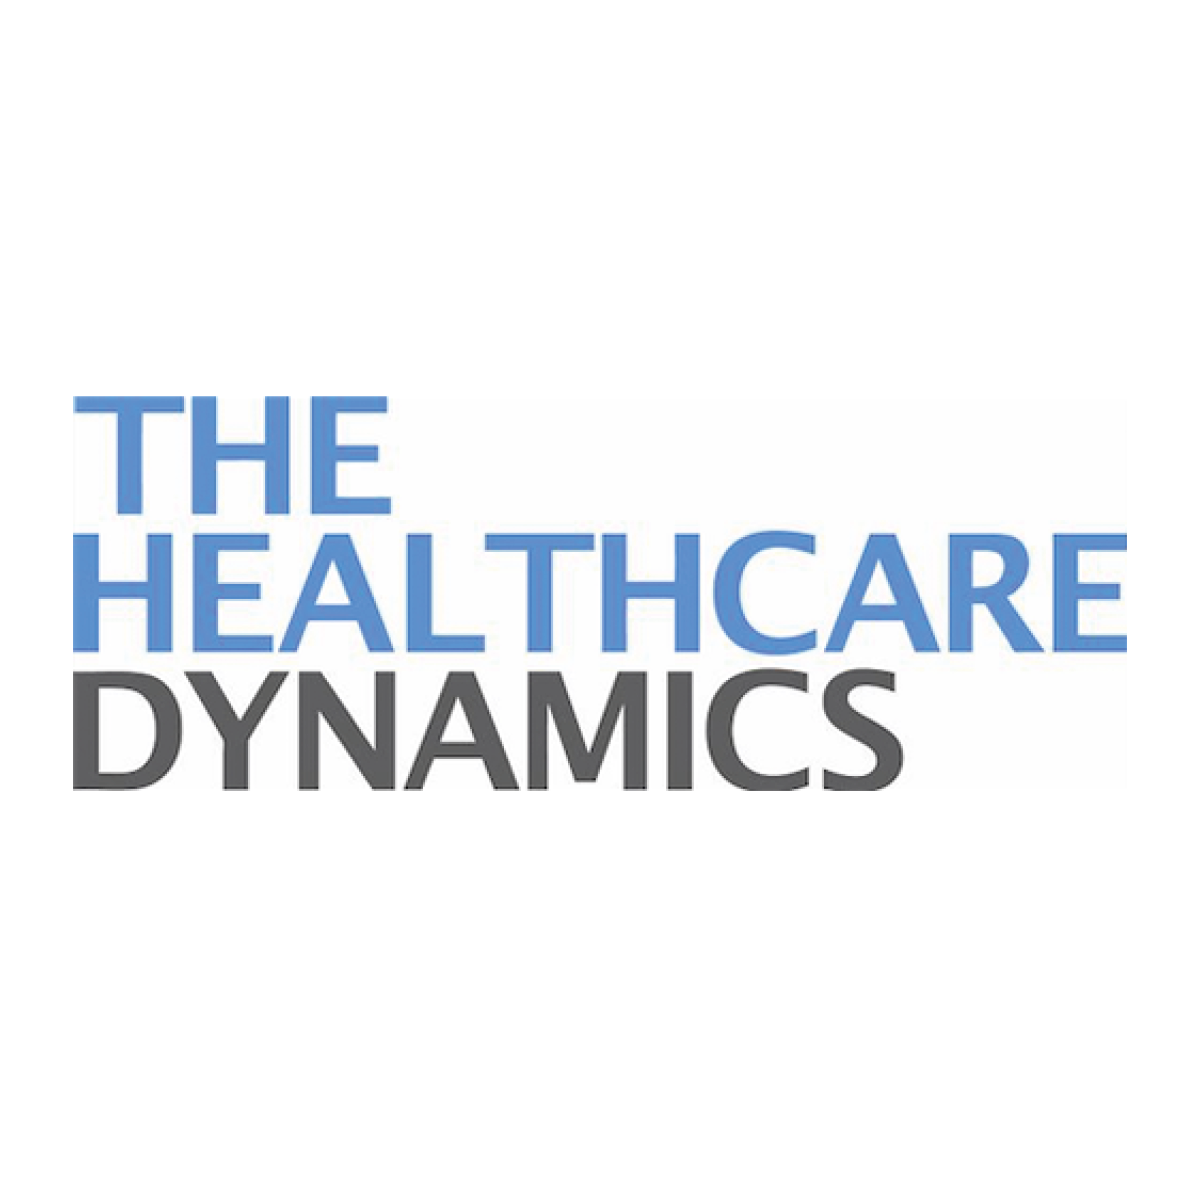 The Healthcare Dynamics - Maleisië